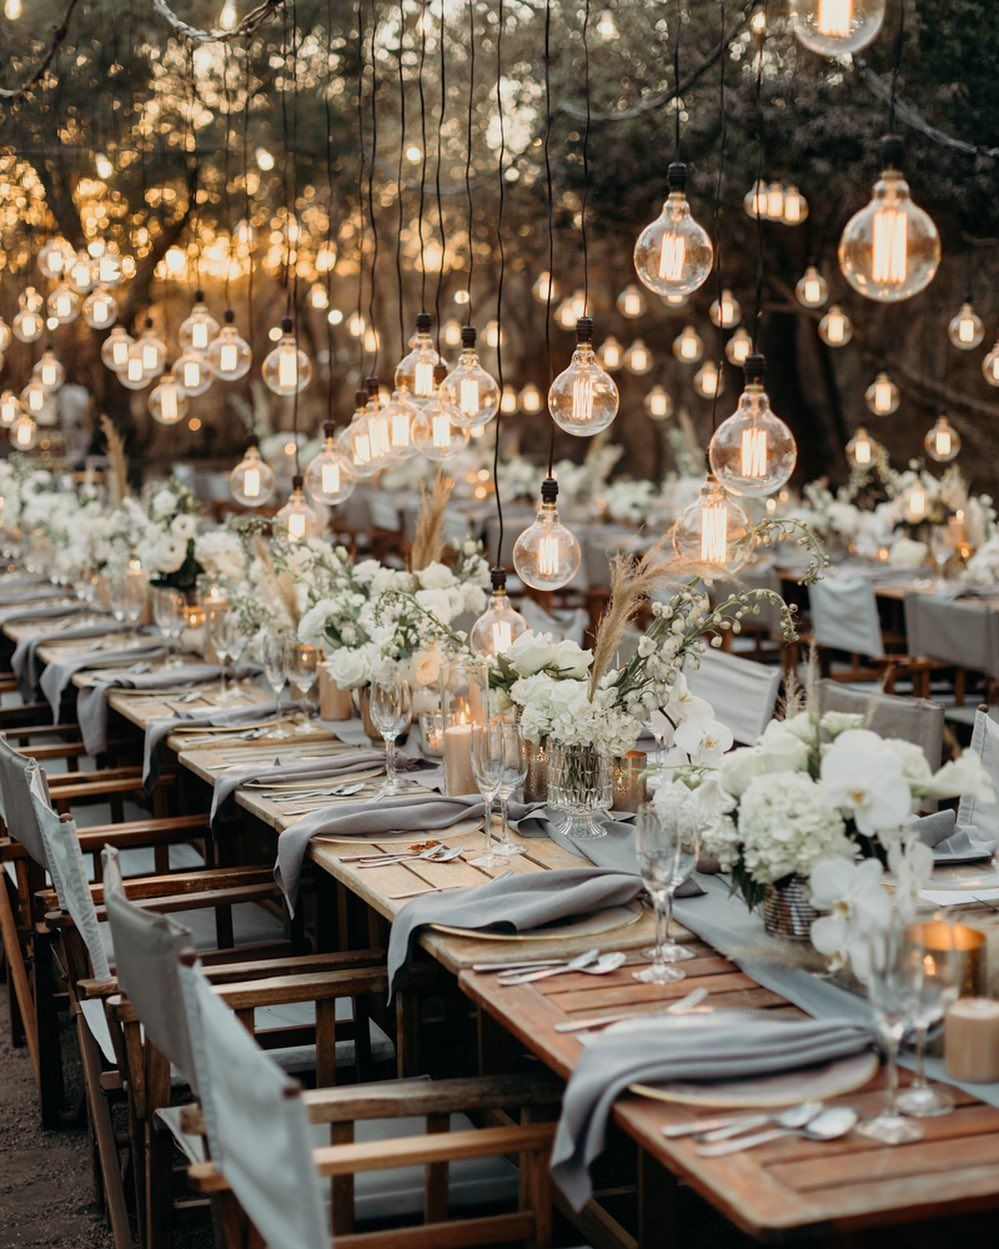 Zavion Kotze Events Company On Instagram An Incredible Wedding In The Bush Under The African Sky Than Wedding Lights Wedding Decorations Magical Wedding